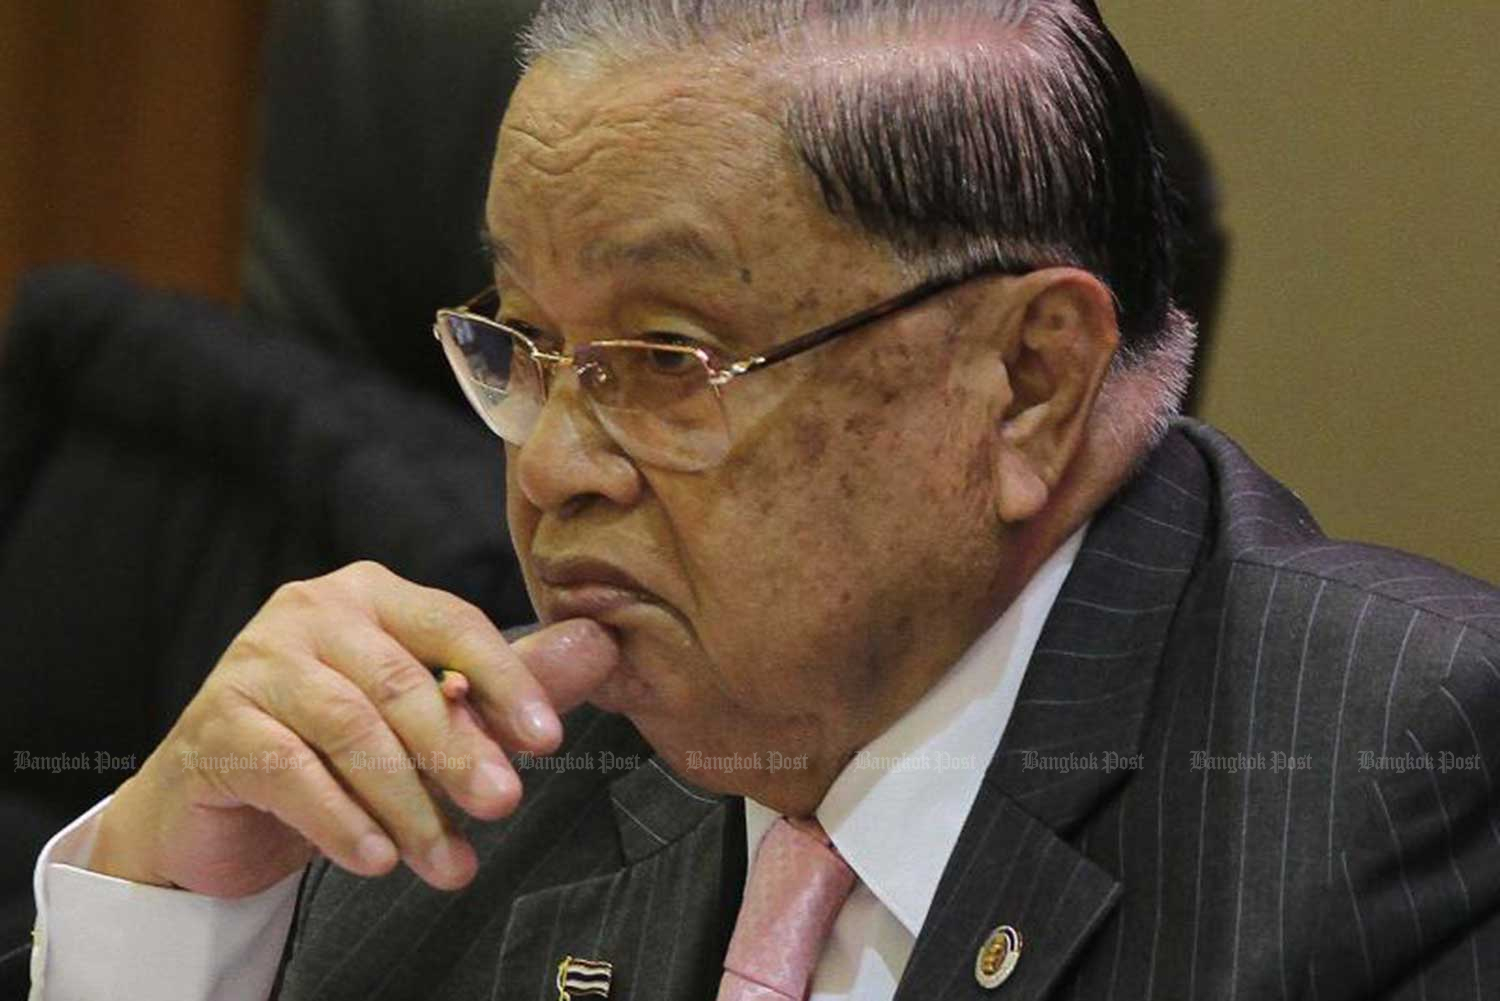 Veteran Buri Ram politician and former House speaker Chai Chidchob died at his house in Buri Ram province on Friday morning. (File photo)